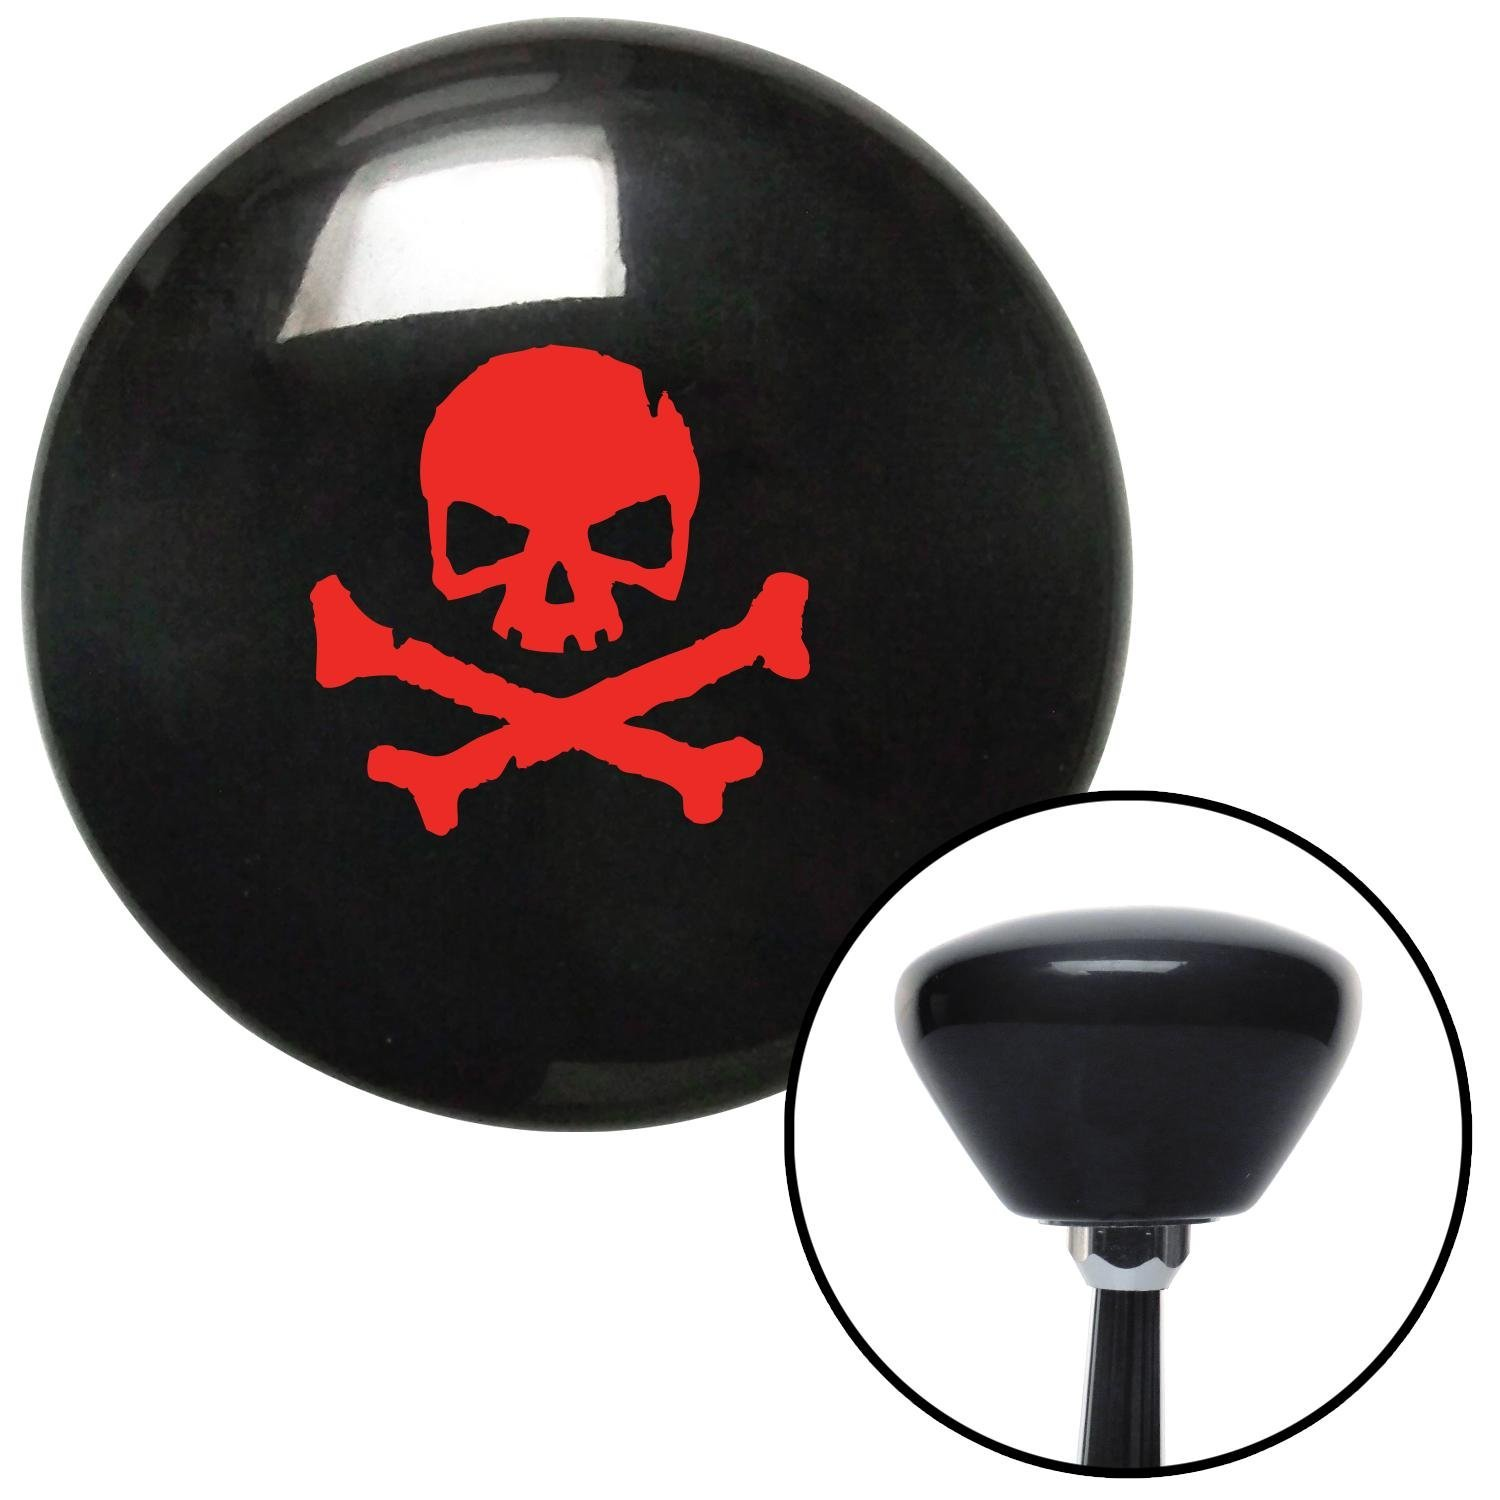 American Shifter 148973 Black Retro Shift Knob with M16 x 1.5 Insert Red Skull 1